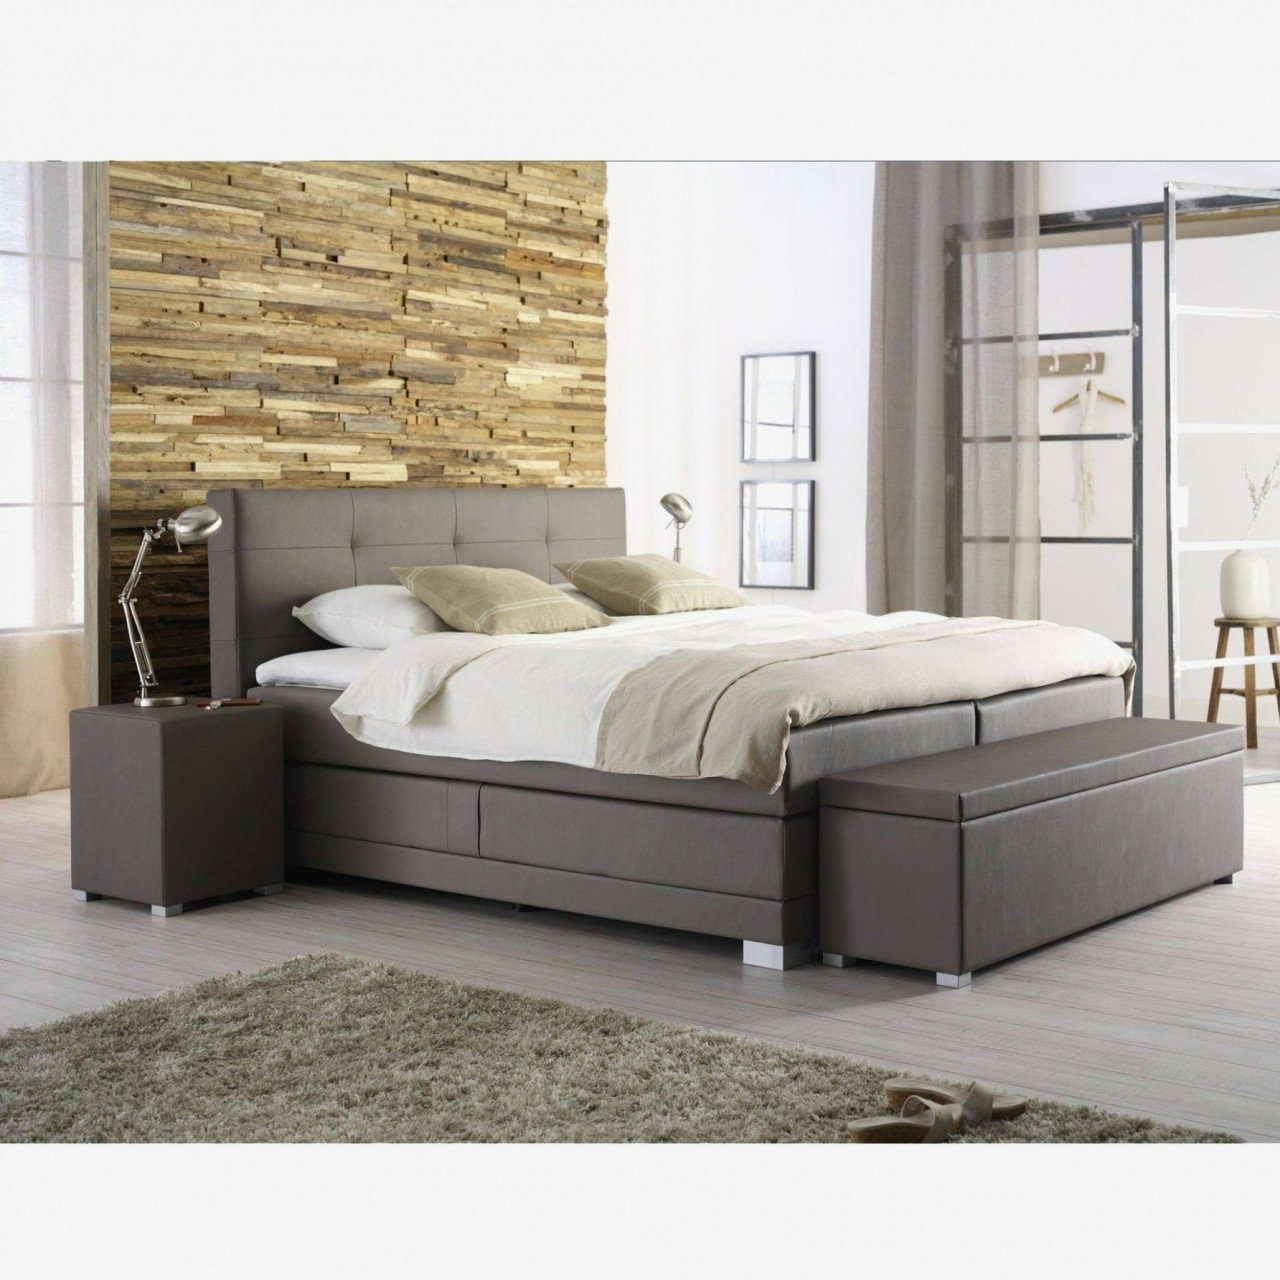 Low Price Bedroom Set Unique Drawers Under Bed — Procura Home Blog